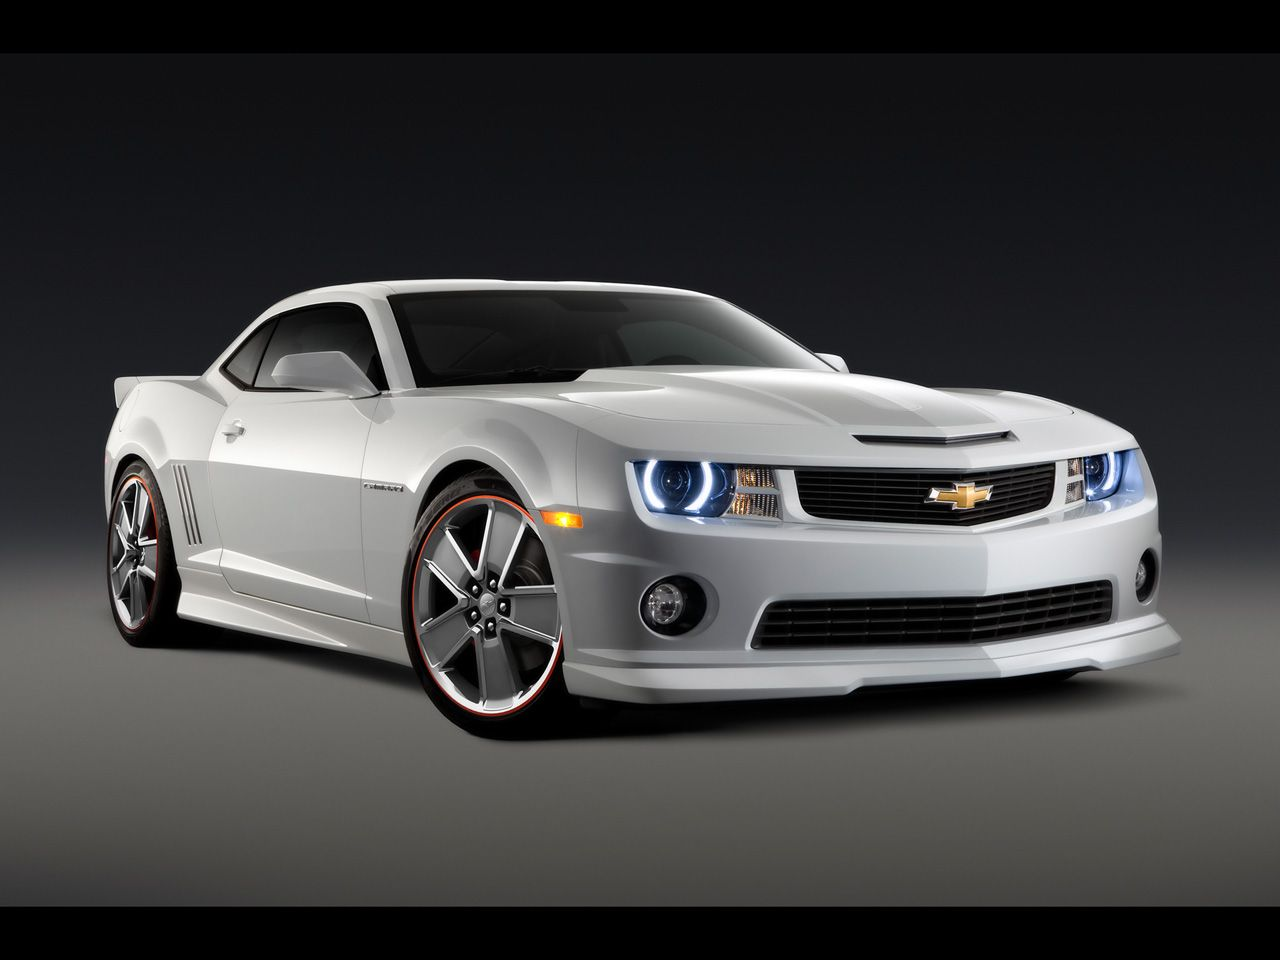 Image Detail For Chevrolet Camaro Wallpapers MuscleCarWallpaperorg